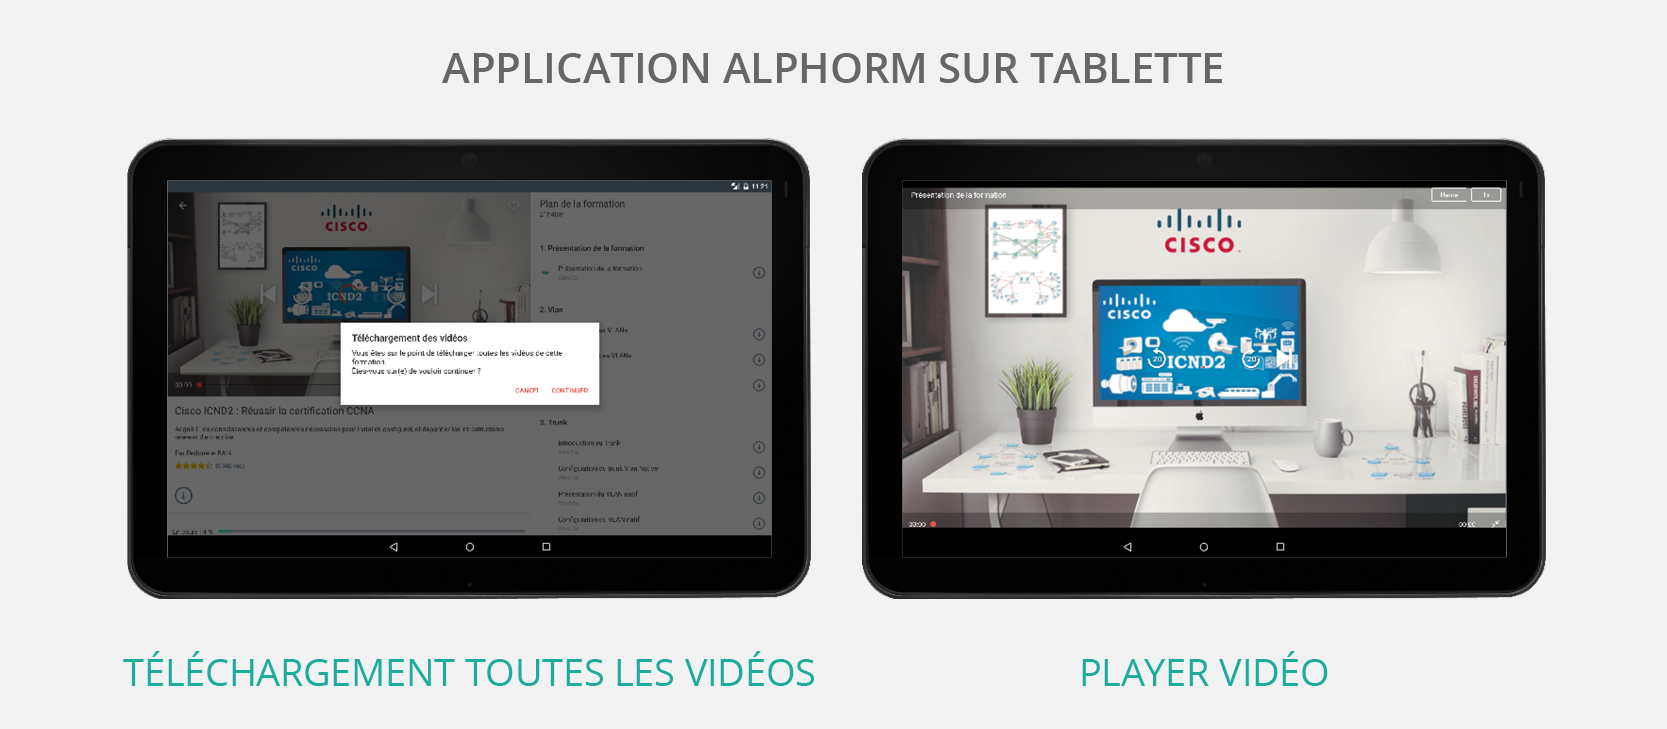 Application Alphorm disponible pour iPad et Tablette Android